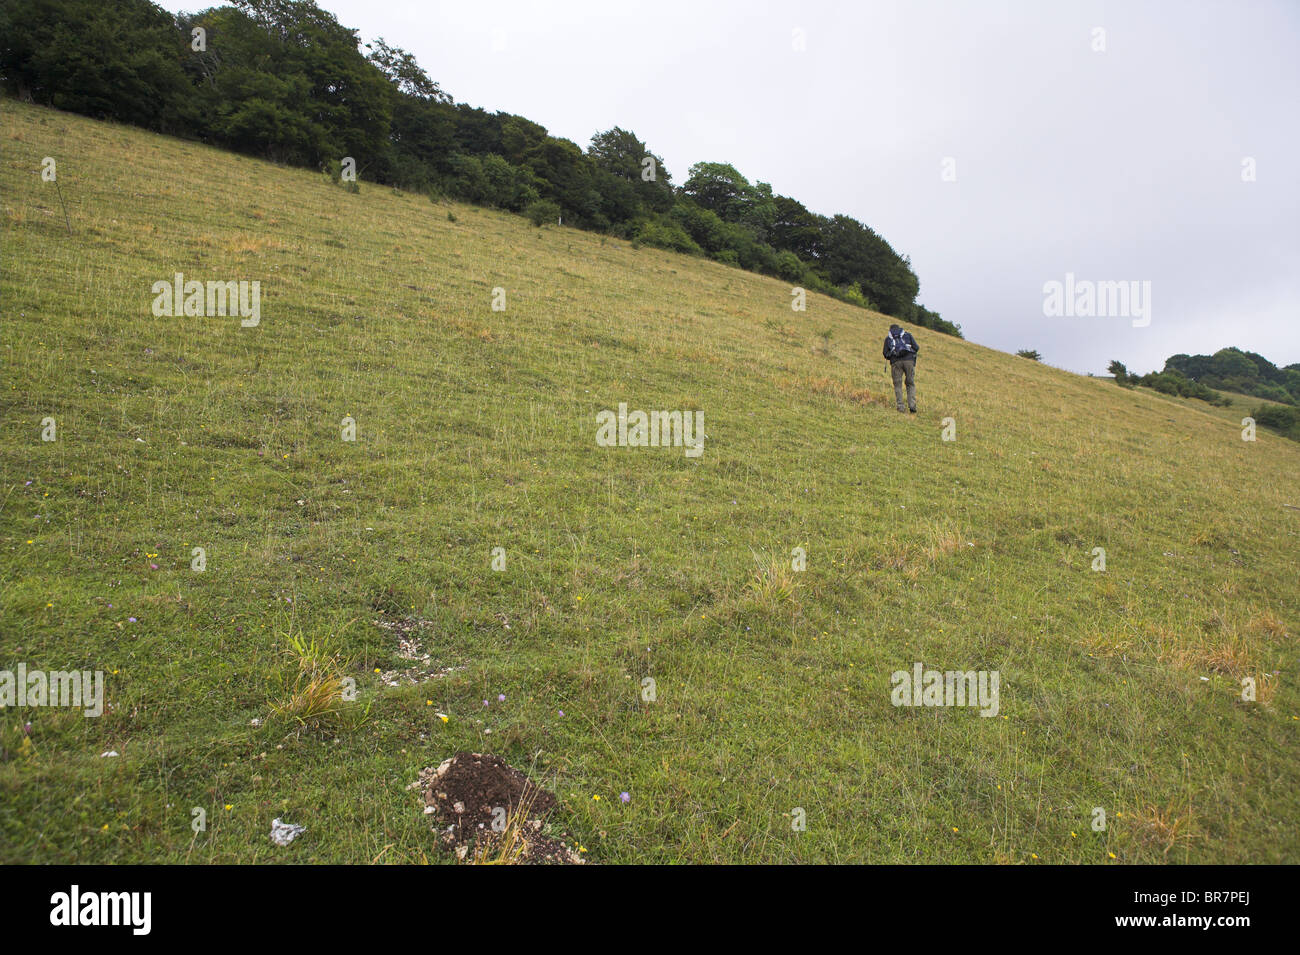 Naturalist walking on chalk downland grassland nature reserve at Aston Rowant, Oxfordshire in August. - Stock Image